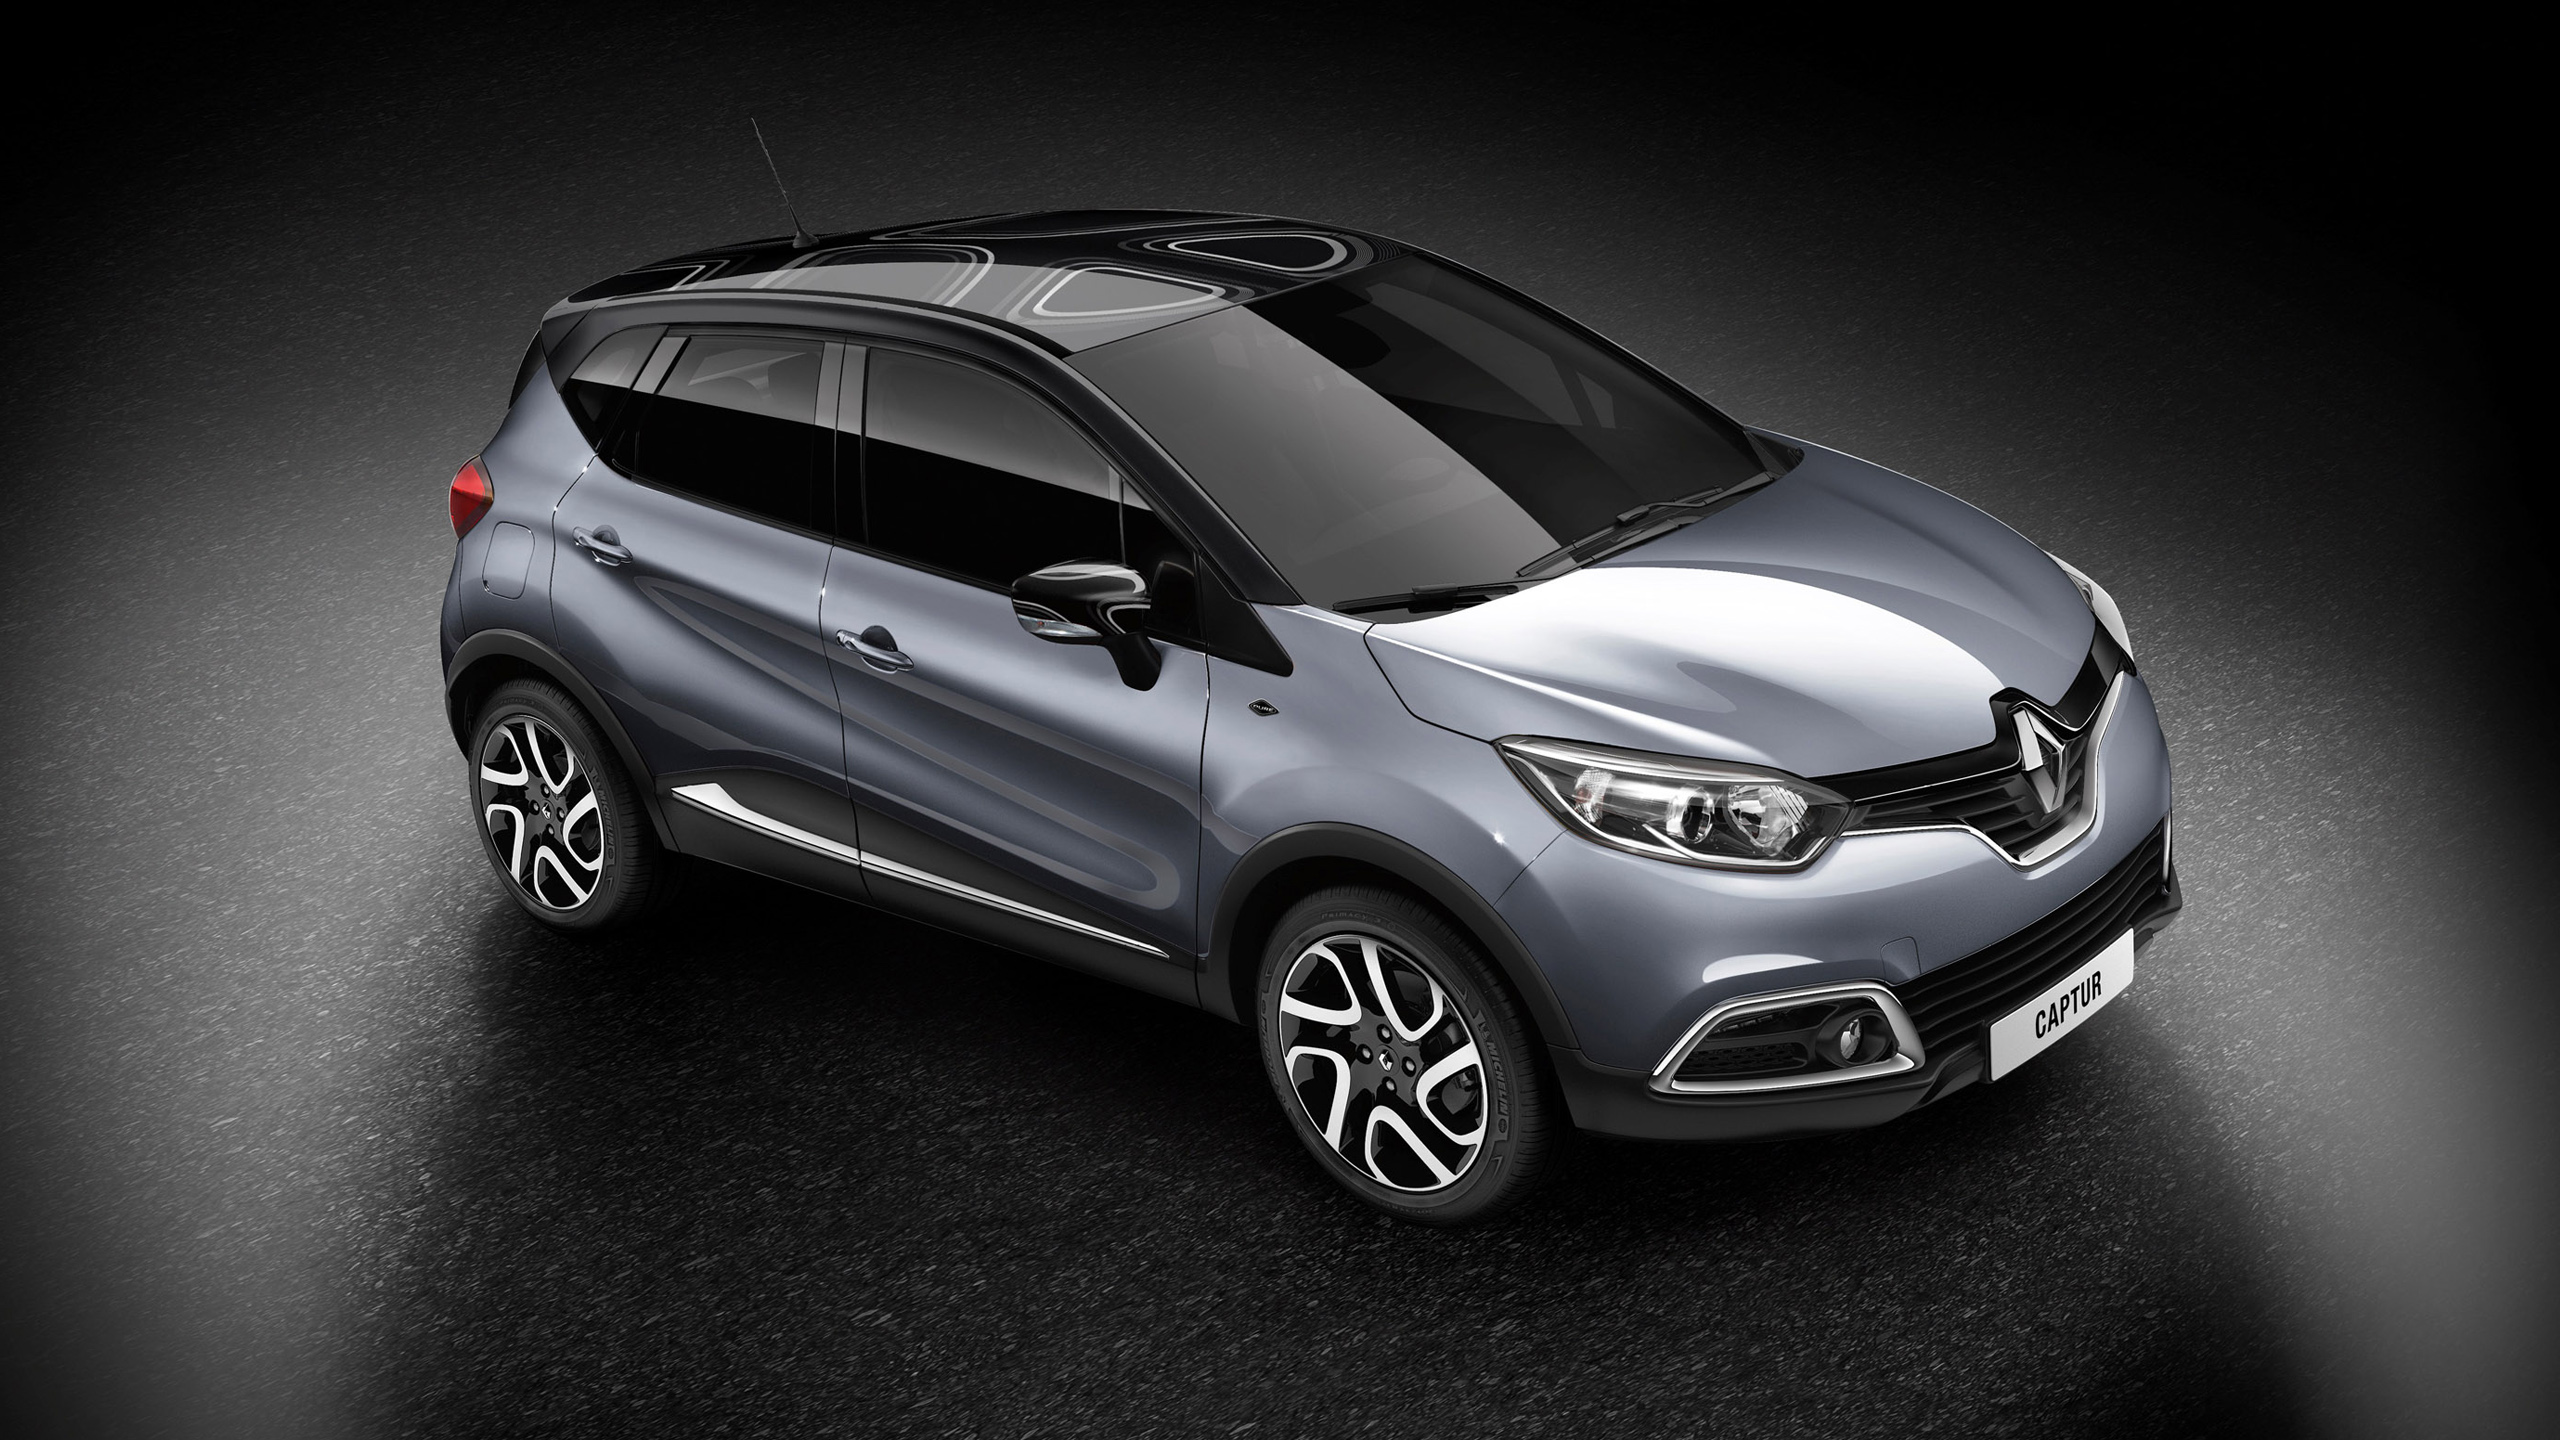 2015 renault captur pure limited edition wallpaper hd car wallpapers id 5123. Black Bedroom Furniture Sets. Home Design Ideas